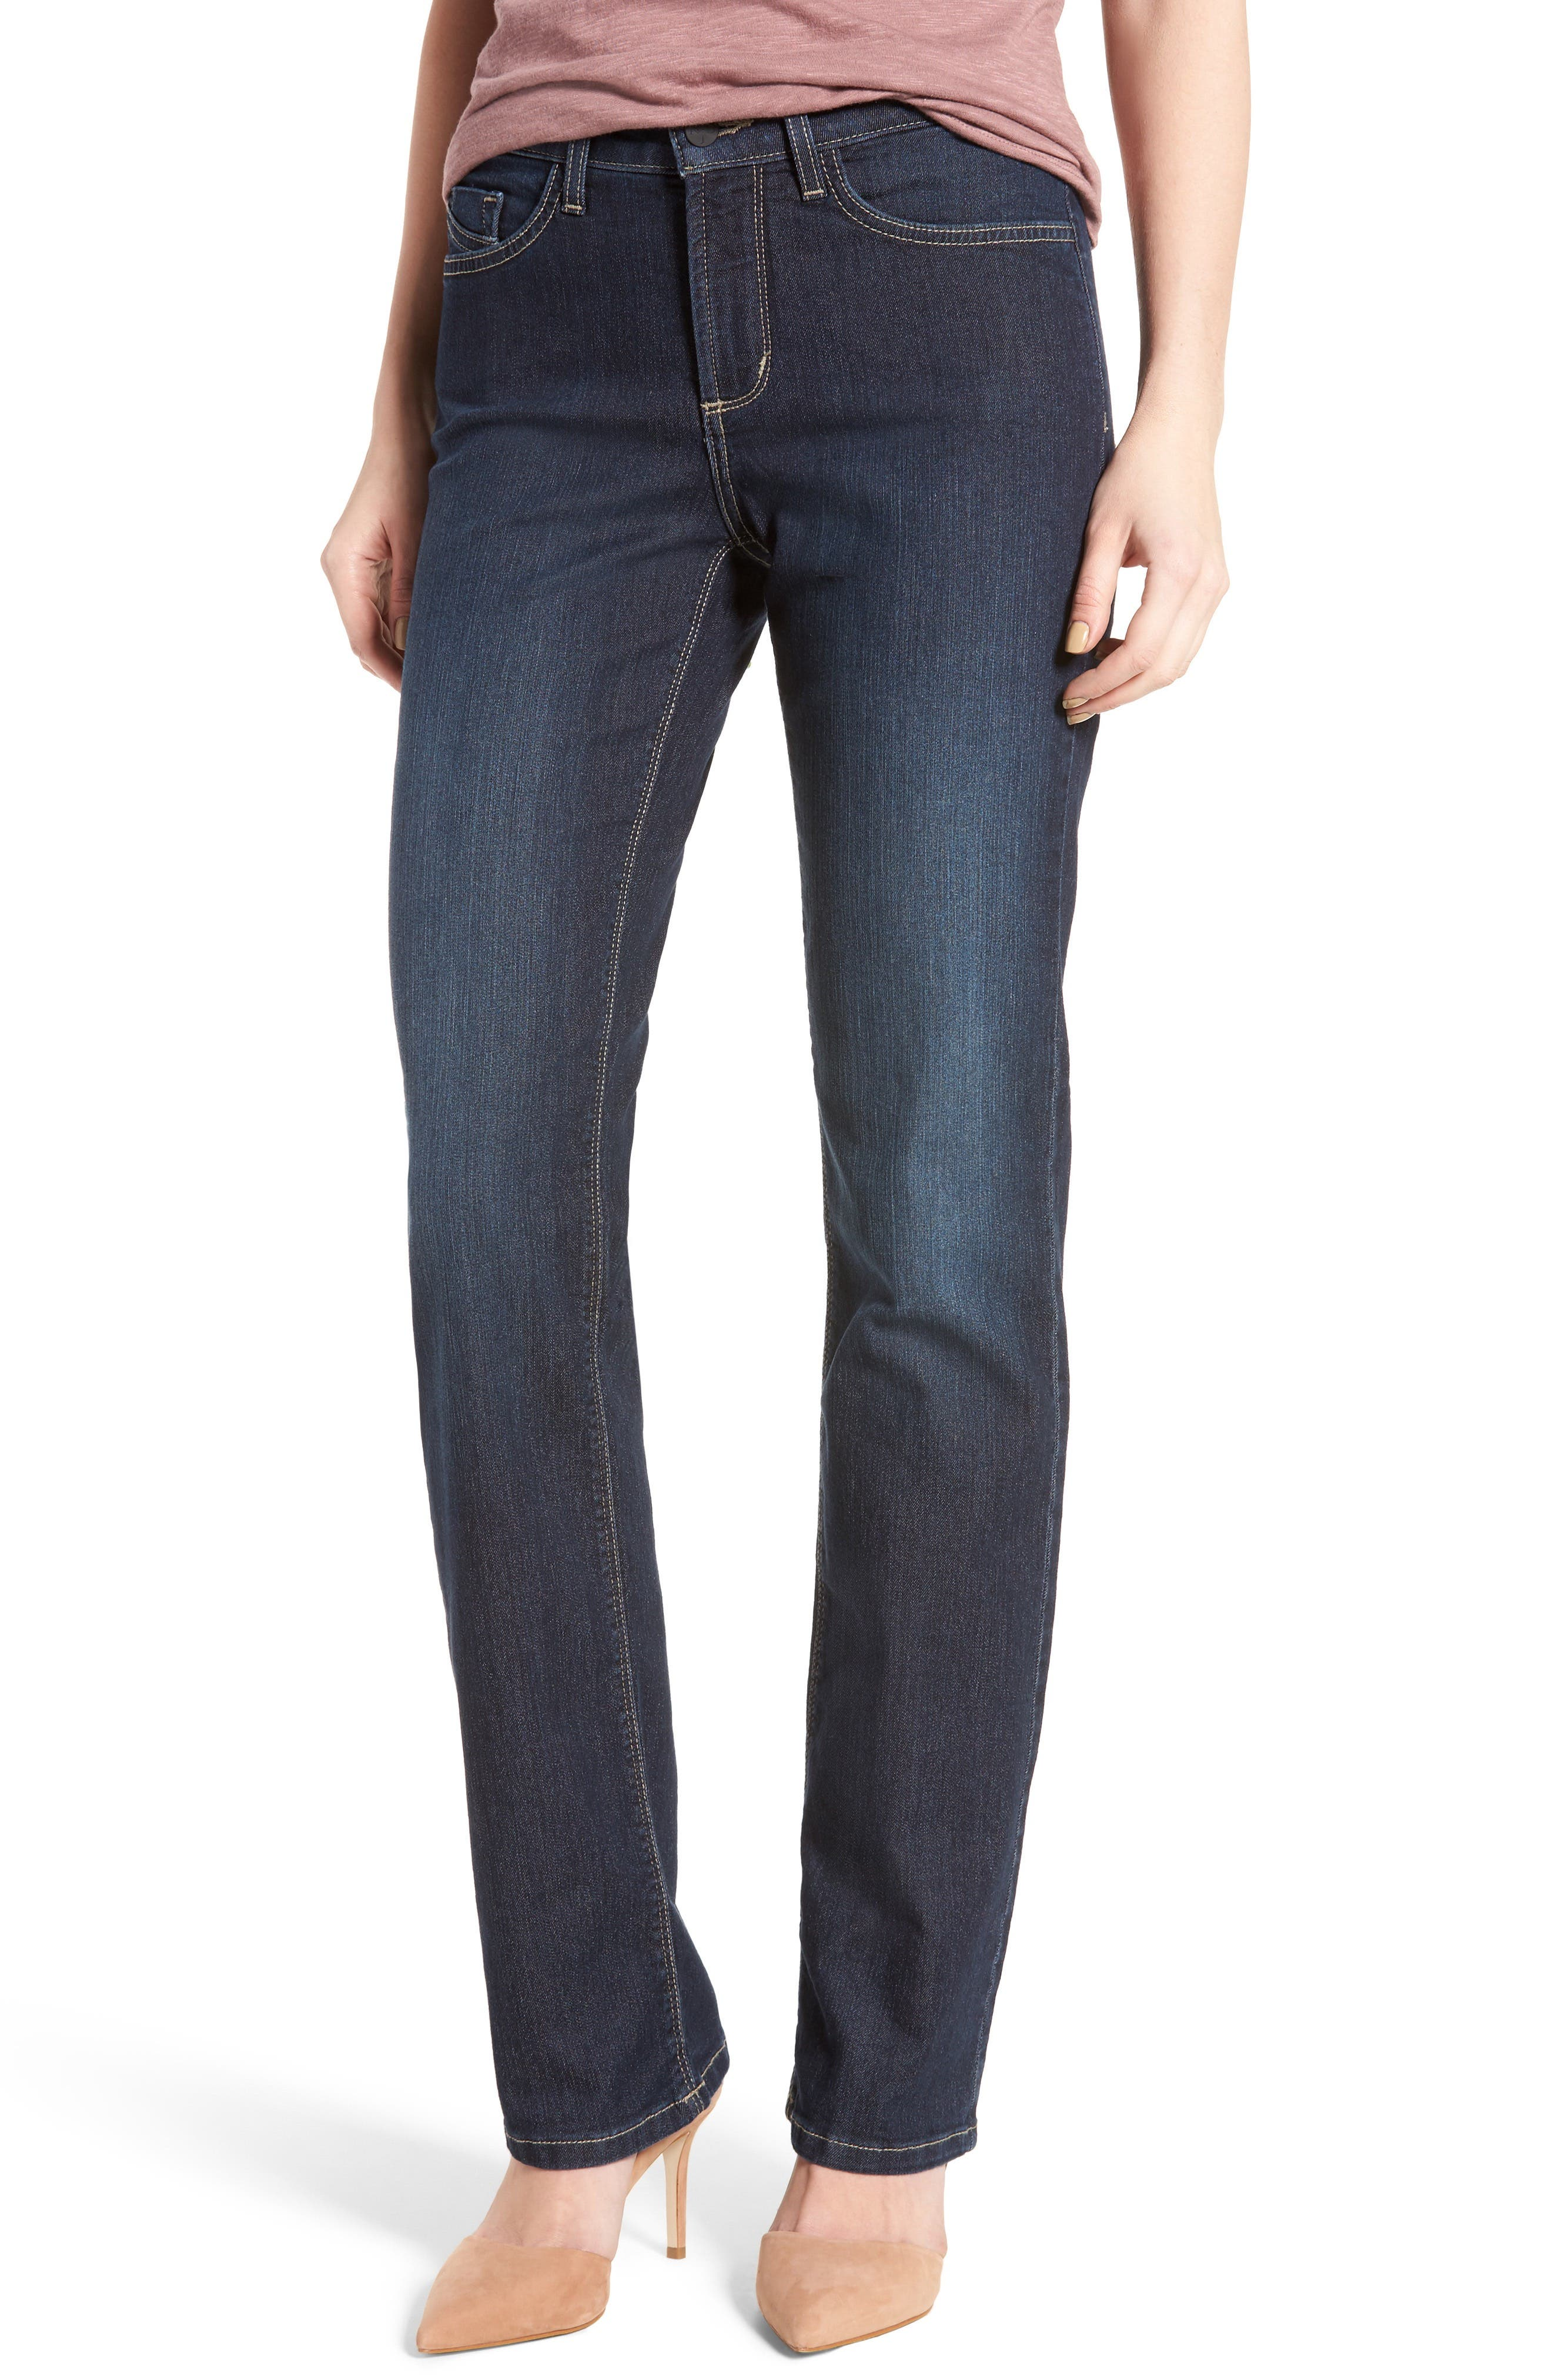 Marilyn Stretch Straight Leg Jeans,                             Main thumbnail 1, color,                             425